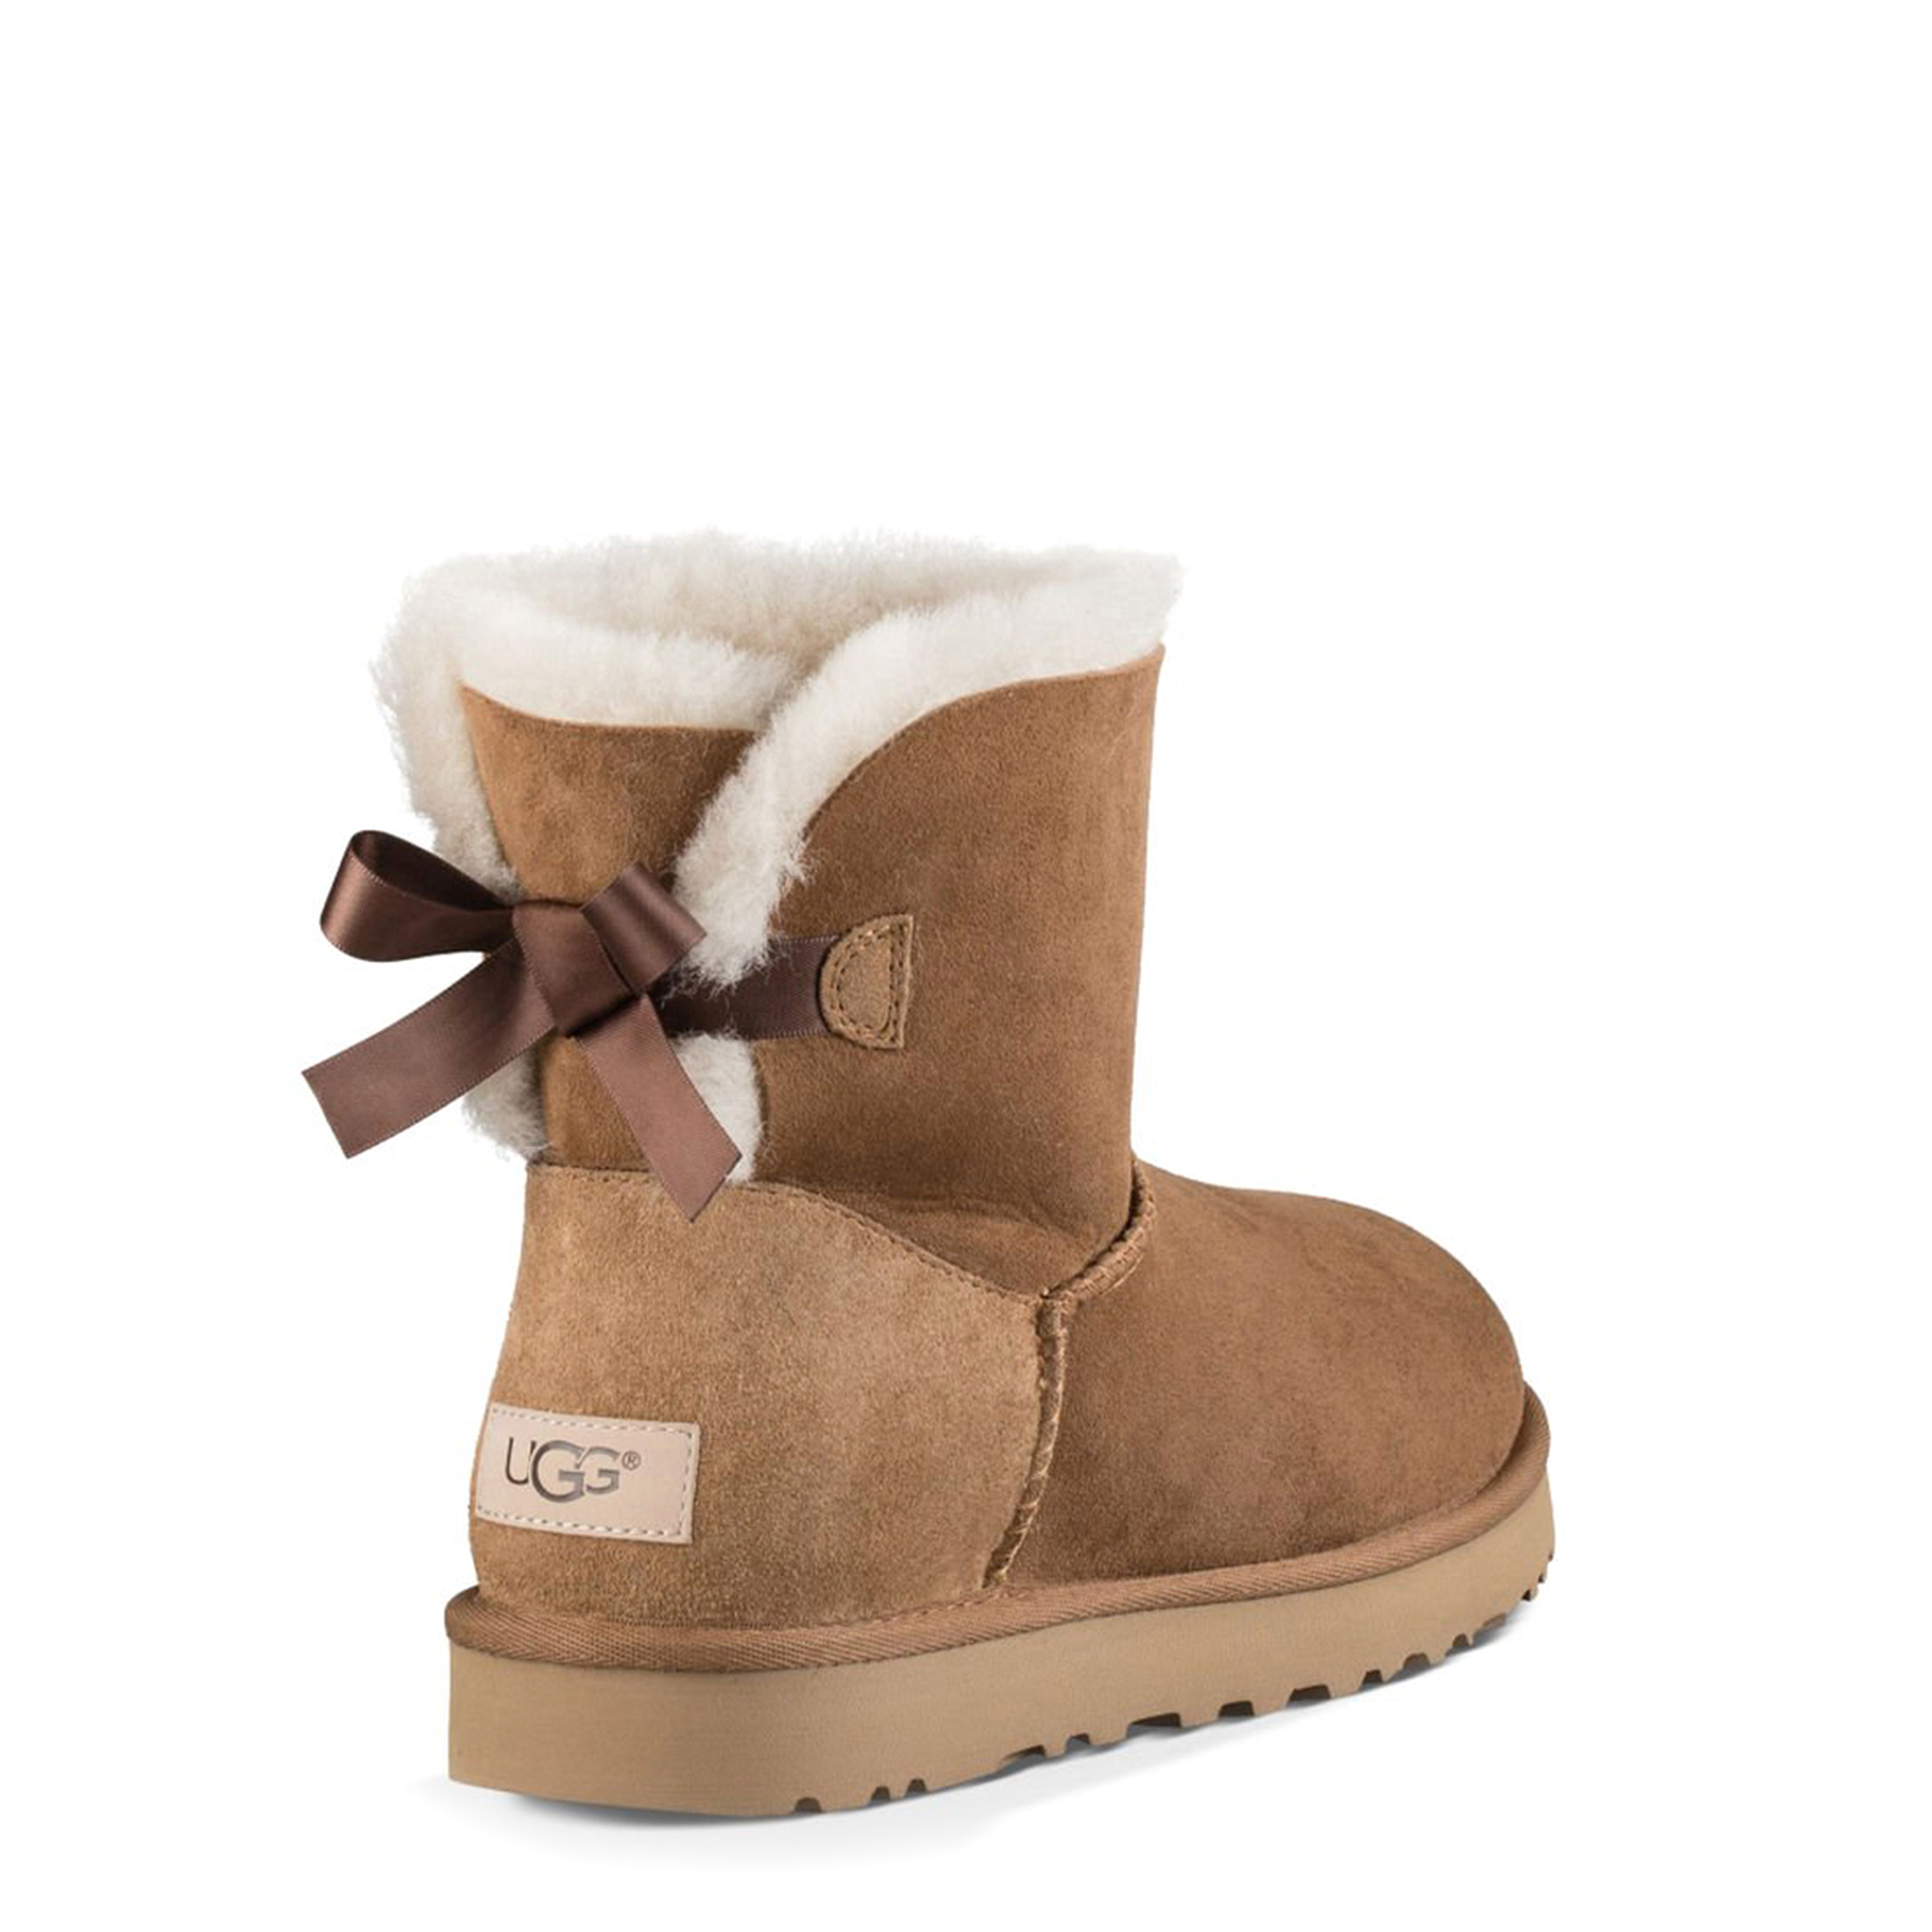 Chaussures  Ugg 1016501 brown